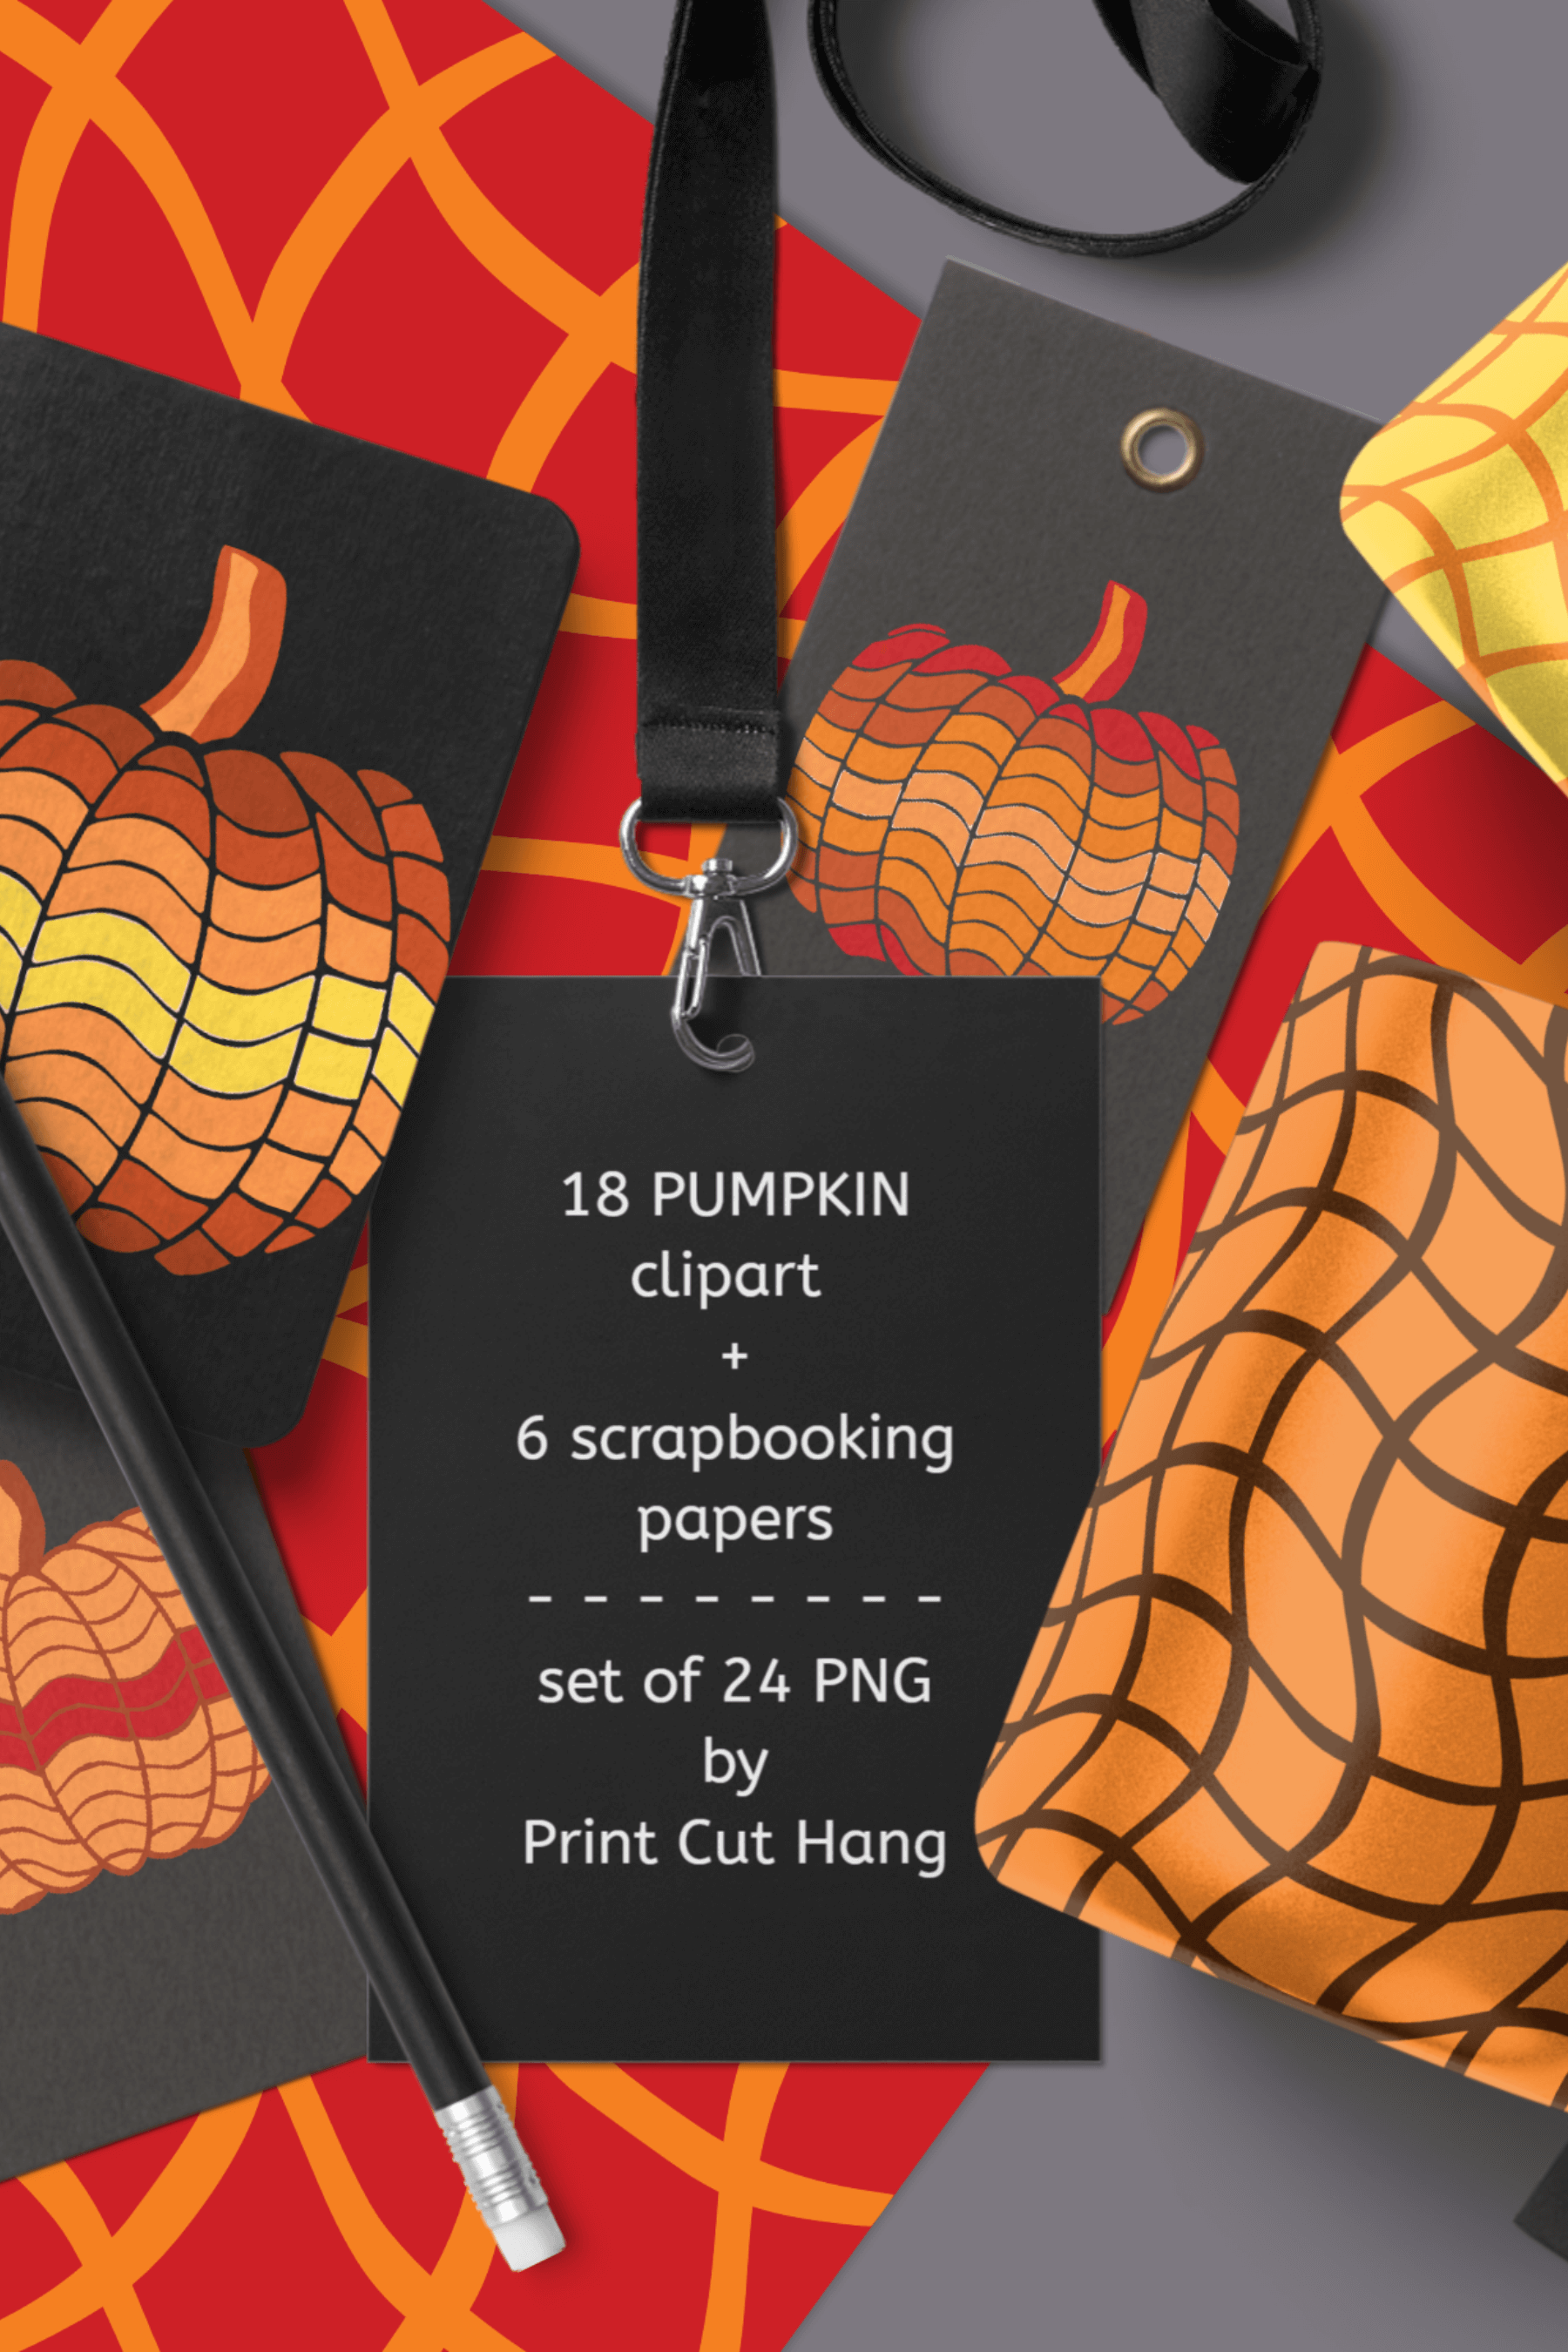 Pumpkins Clipart & Scrapbooking Papers Set of 24 PNG Files example image 5